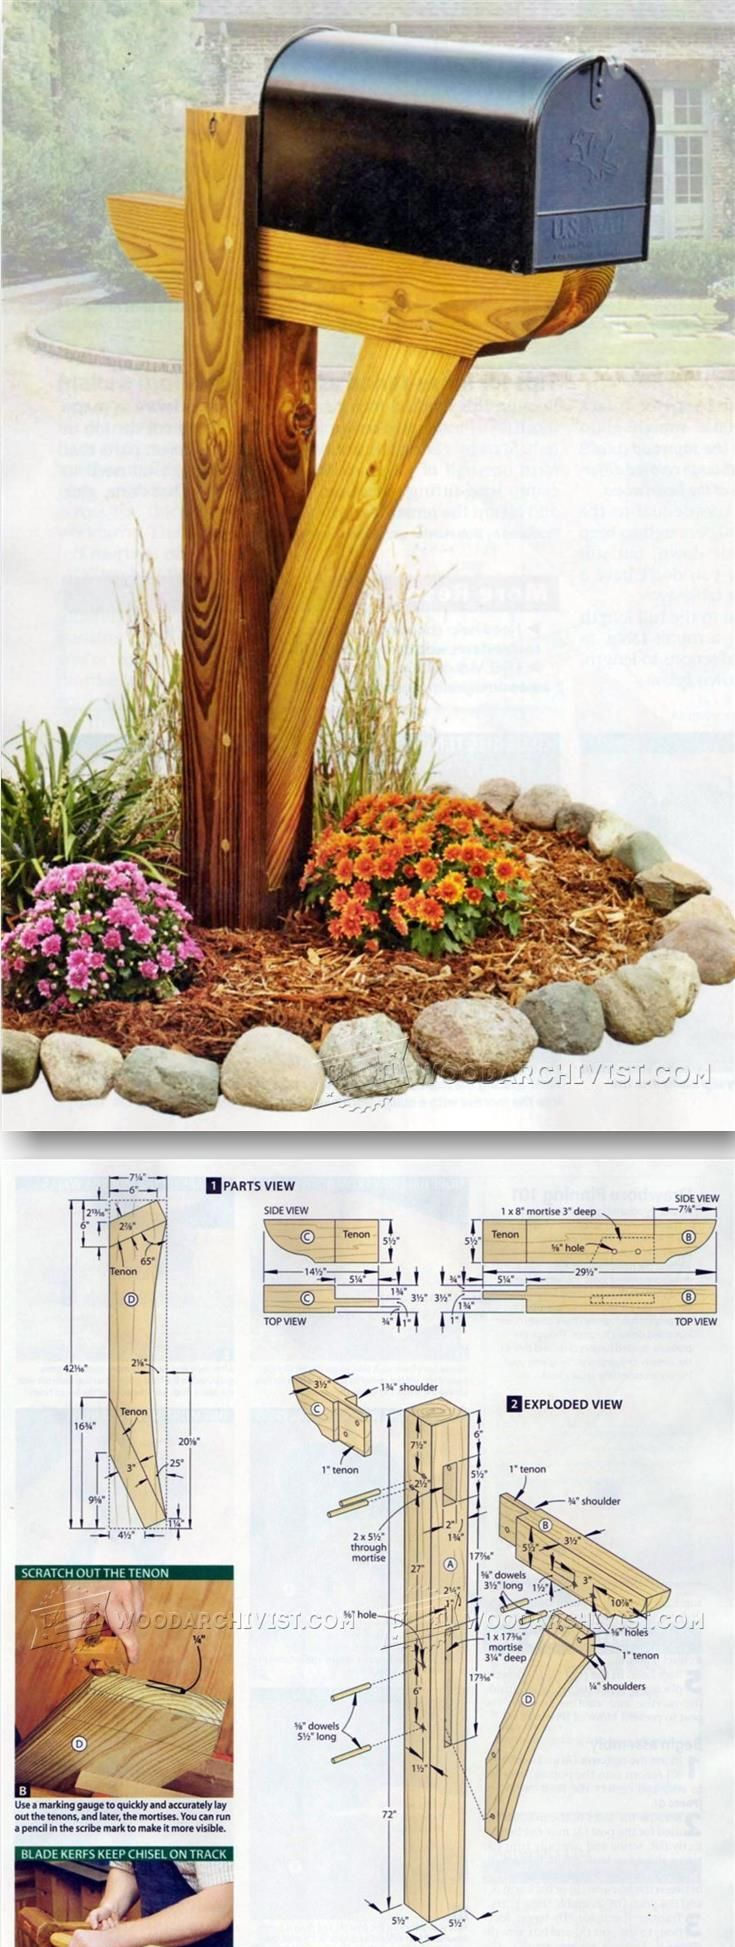 Make Mailbox Post - Outdoor Plans and Projects | WoodArchivist.com